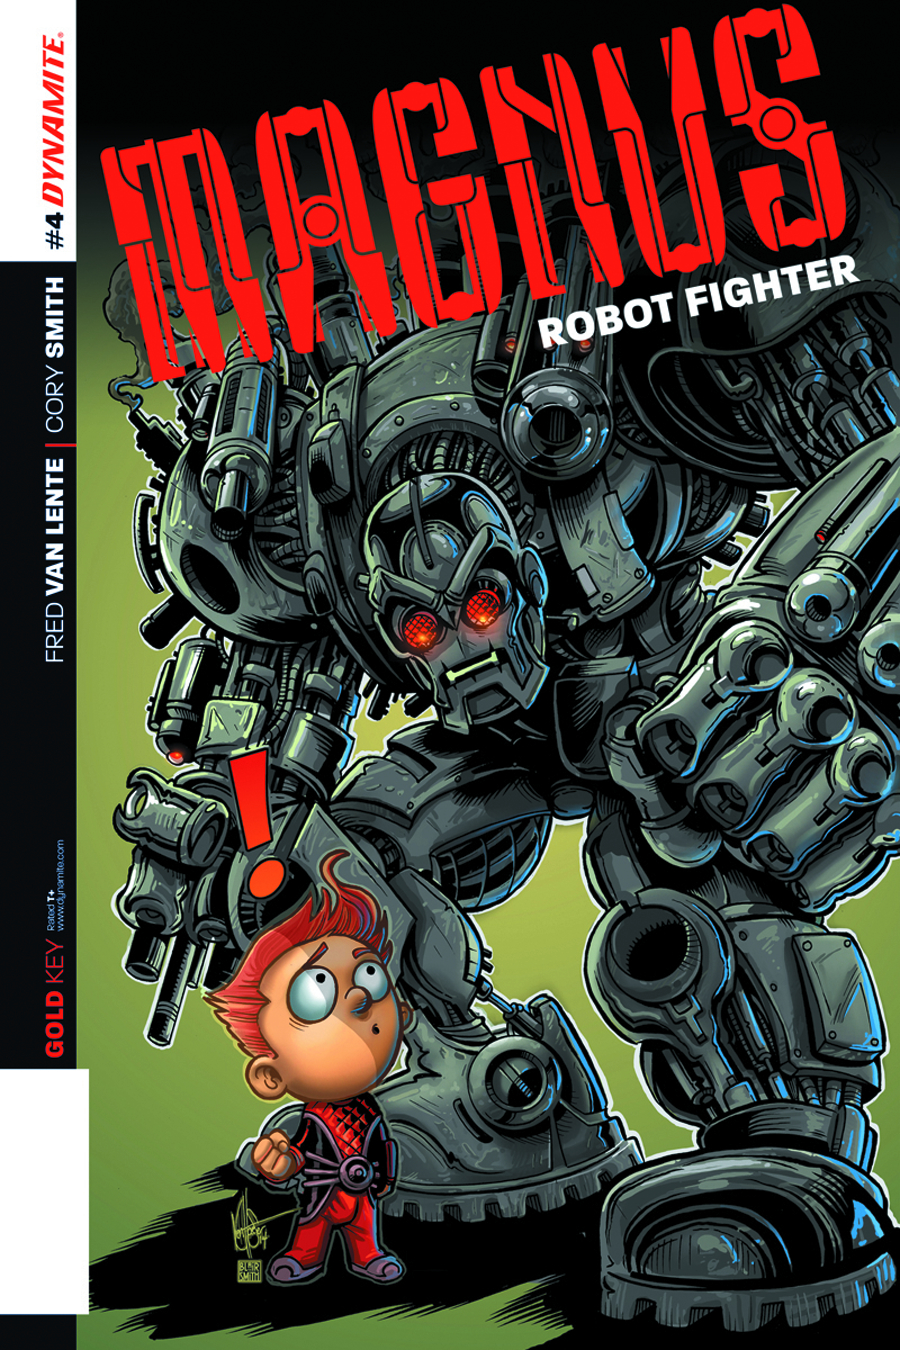 MAGNUS ROBOT FIGHTER #4 100 COPY VAN LENTE SGN INCV